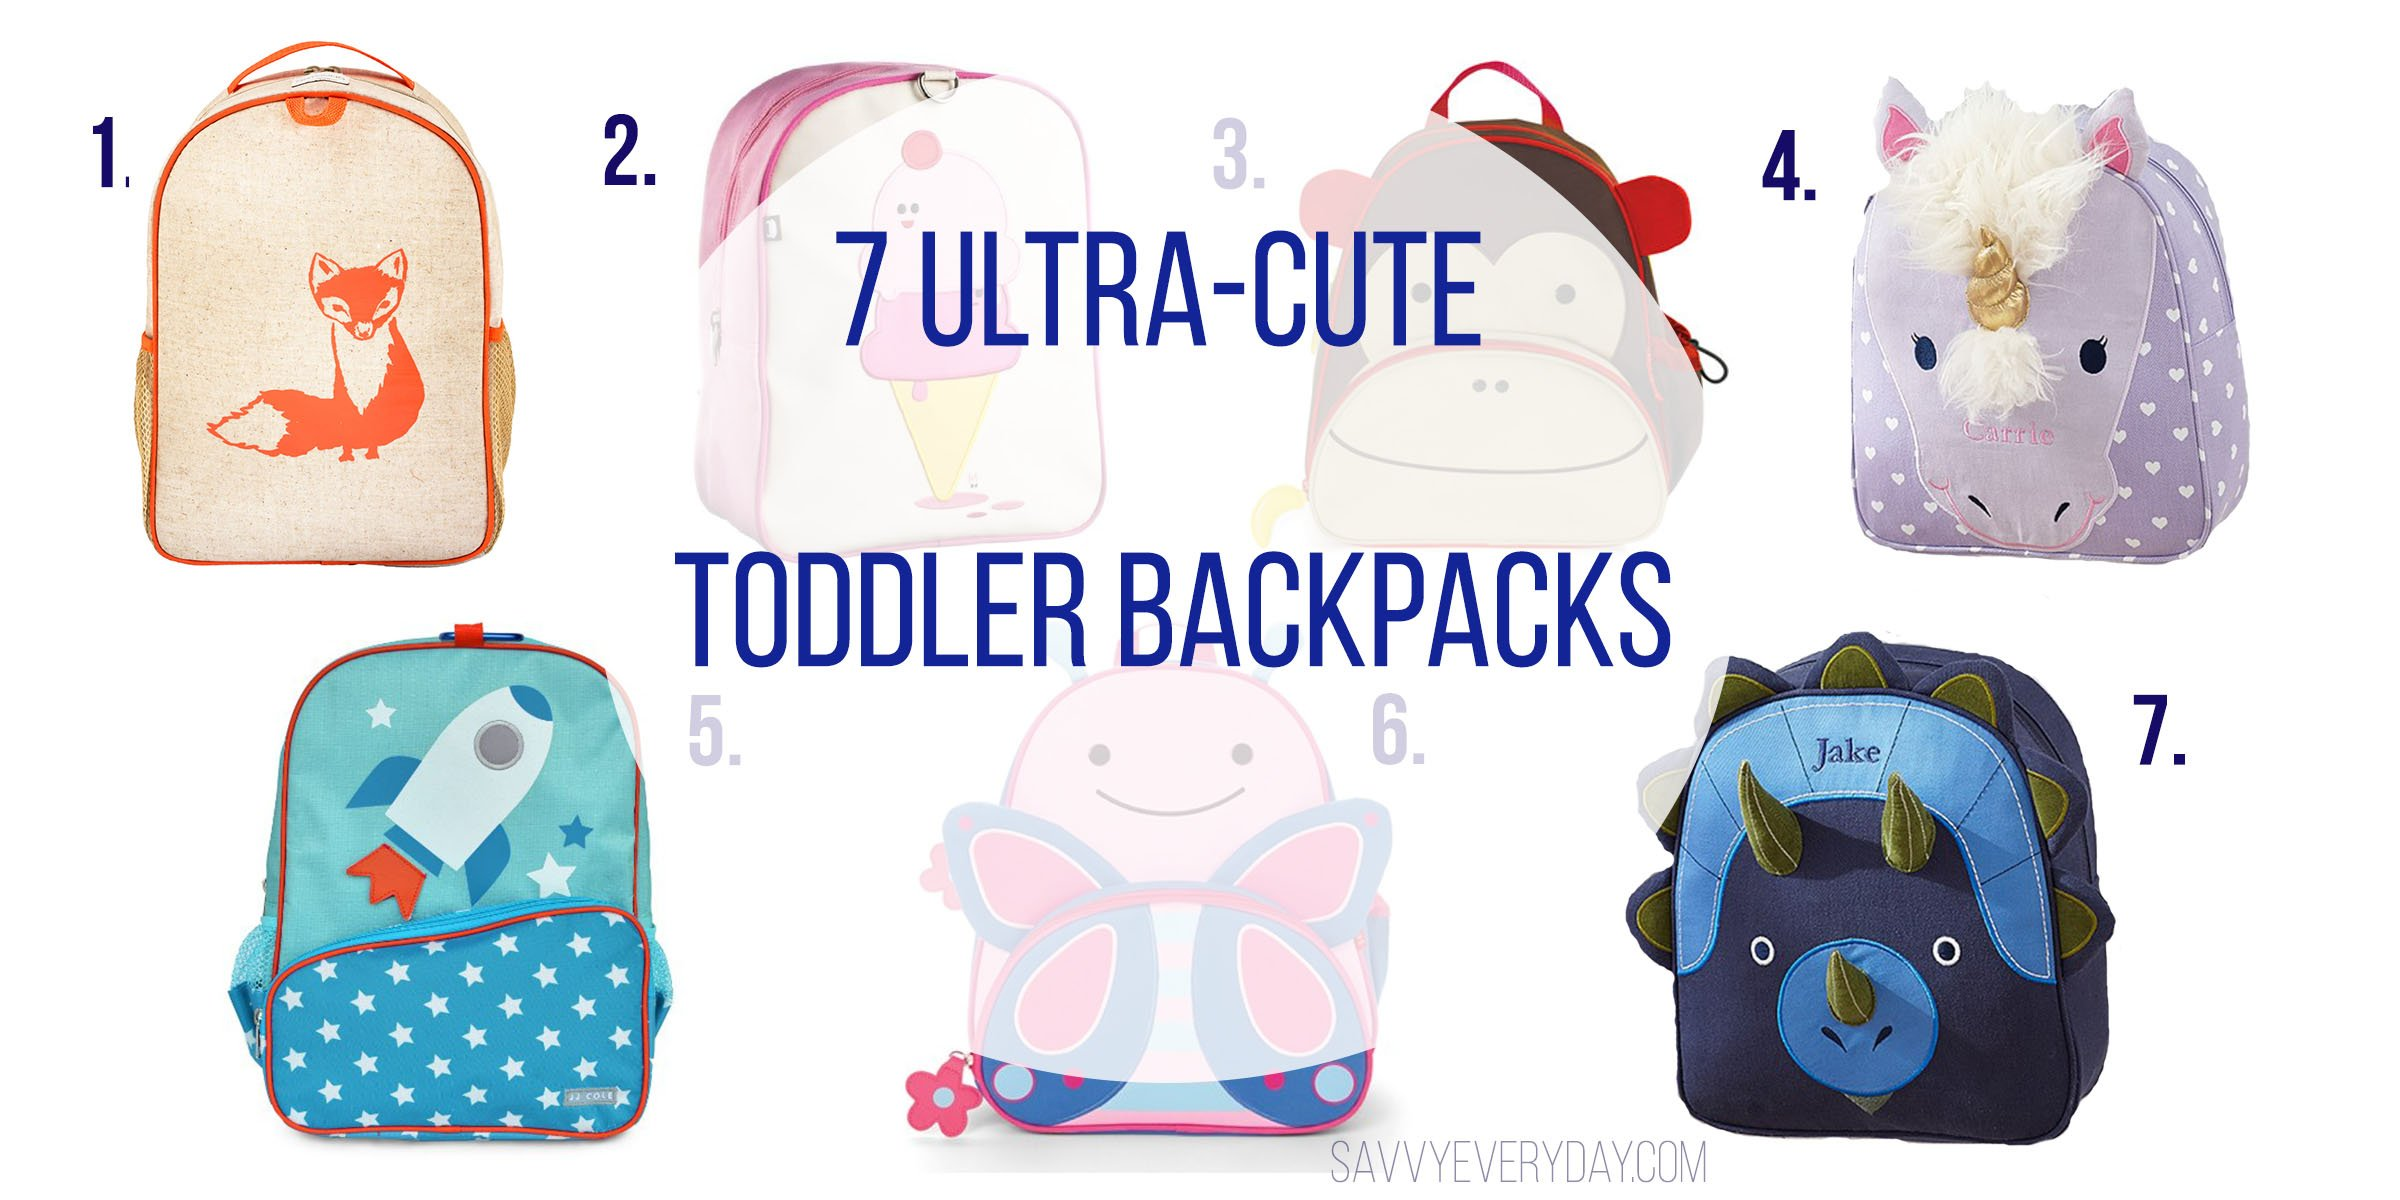 a68d48dcb310 Cute Toddler Backpacks